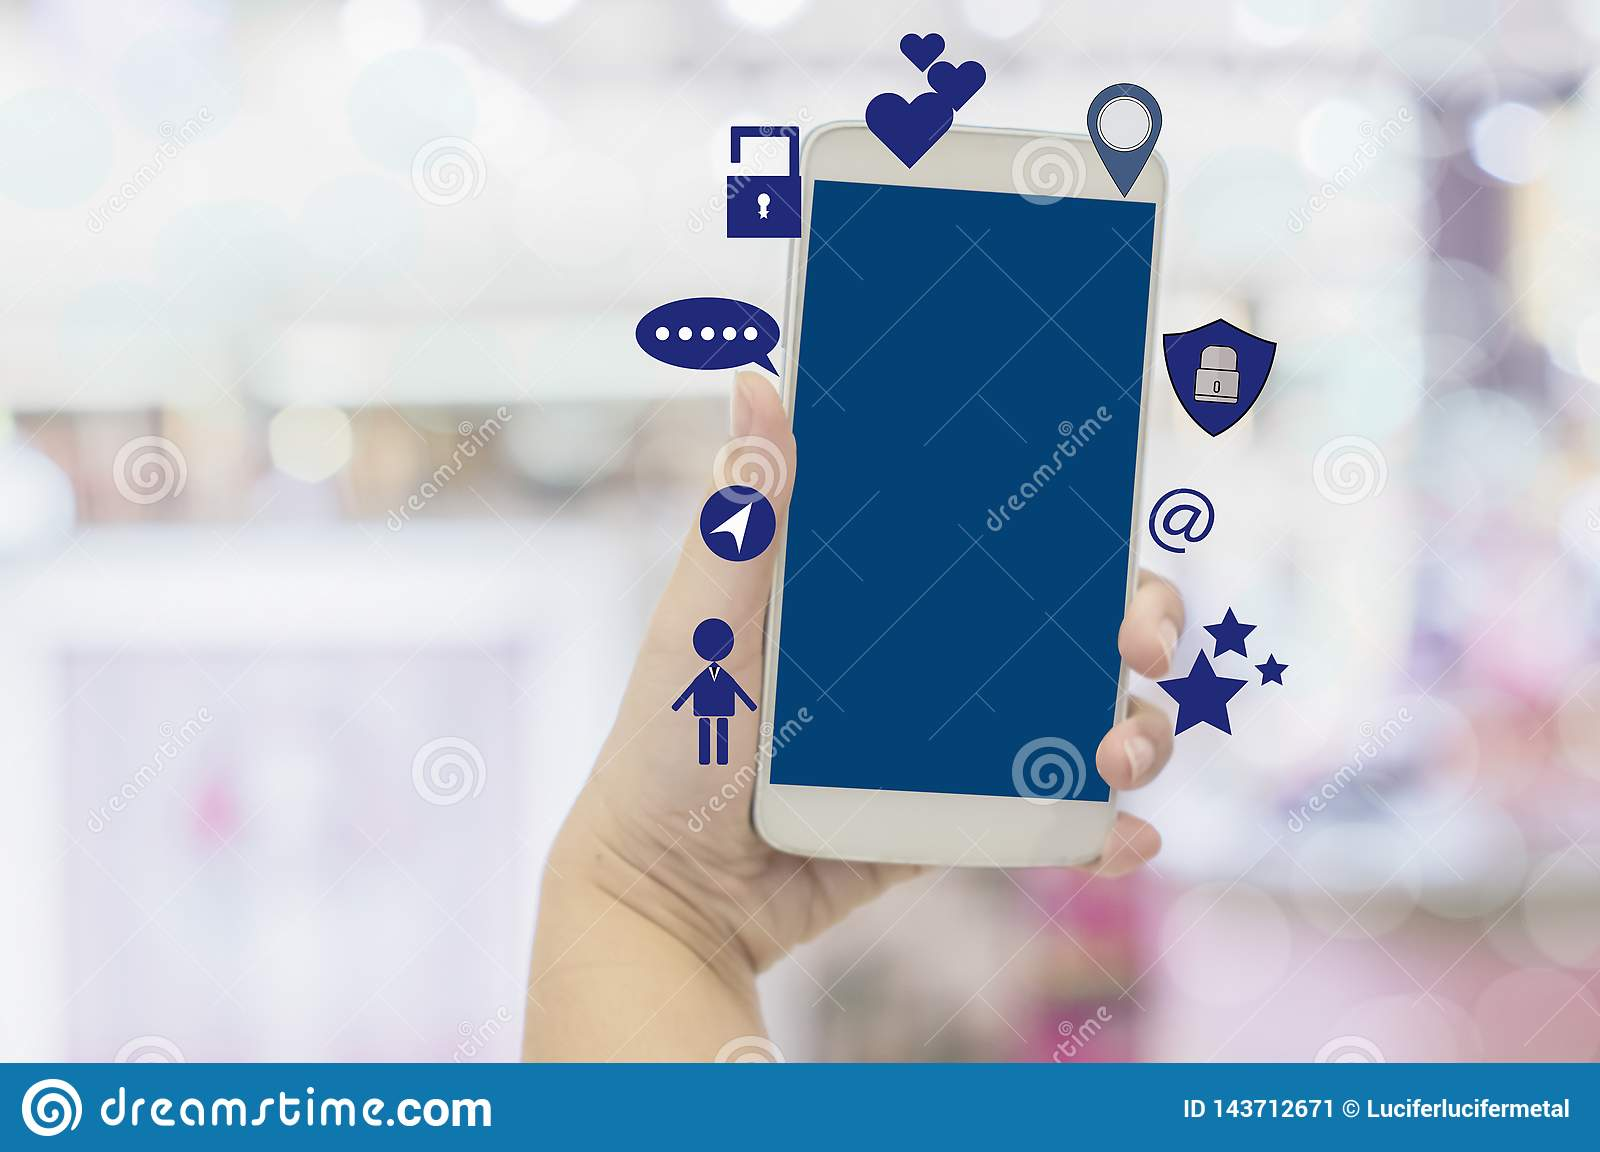 Close-up hands of businesswoman holding smartphones with using social media, concept lifestyle of modern society that people uses